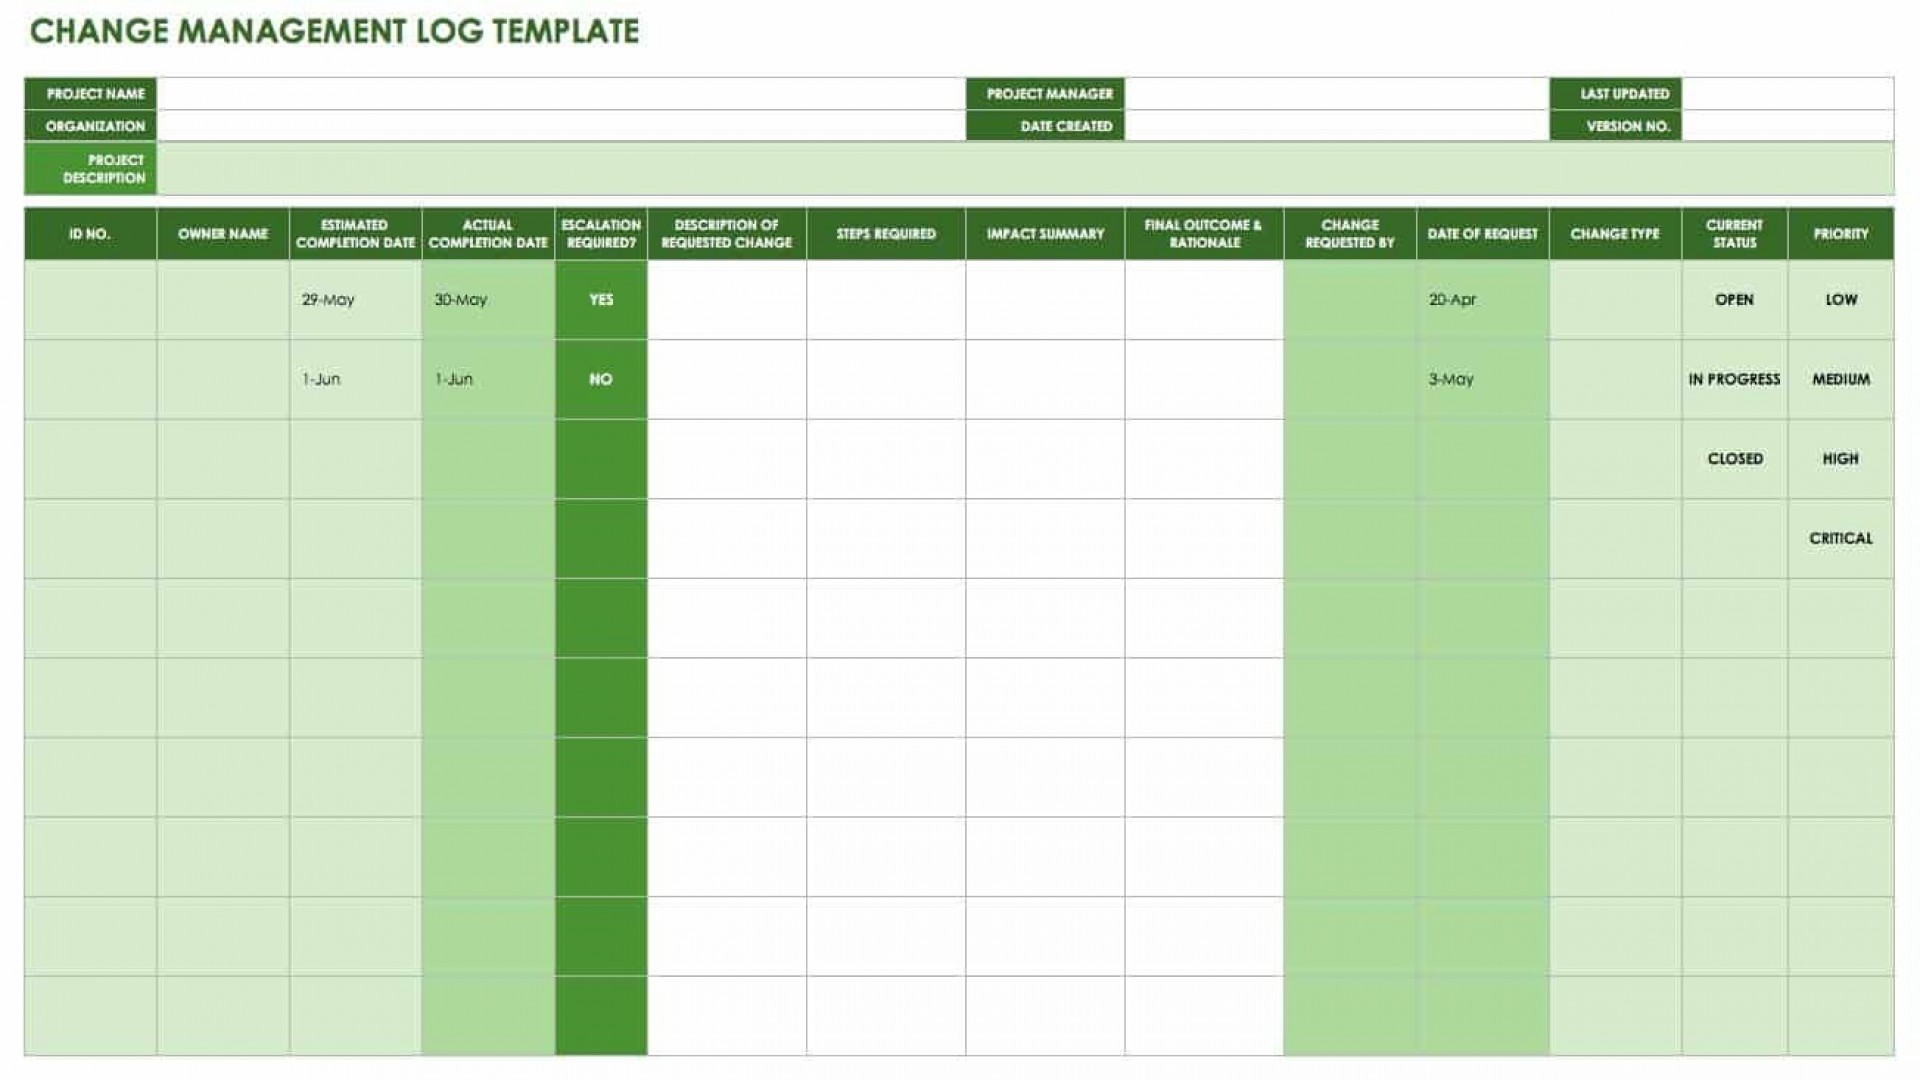 006 Stunning Change Management Proces Template Photo 1920